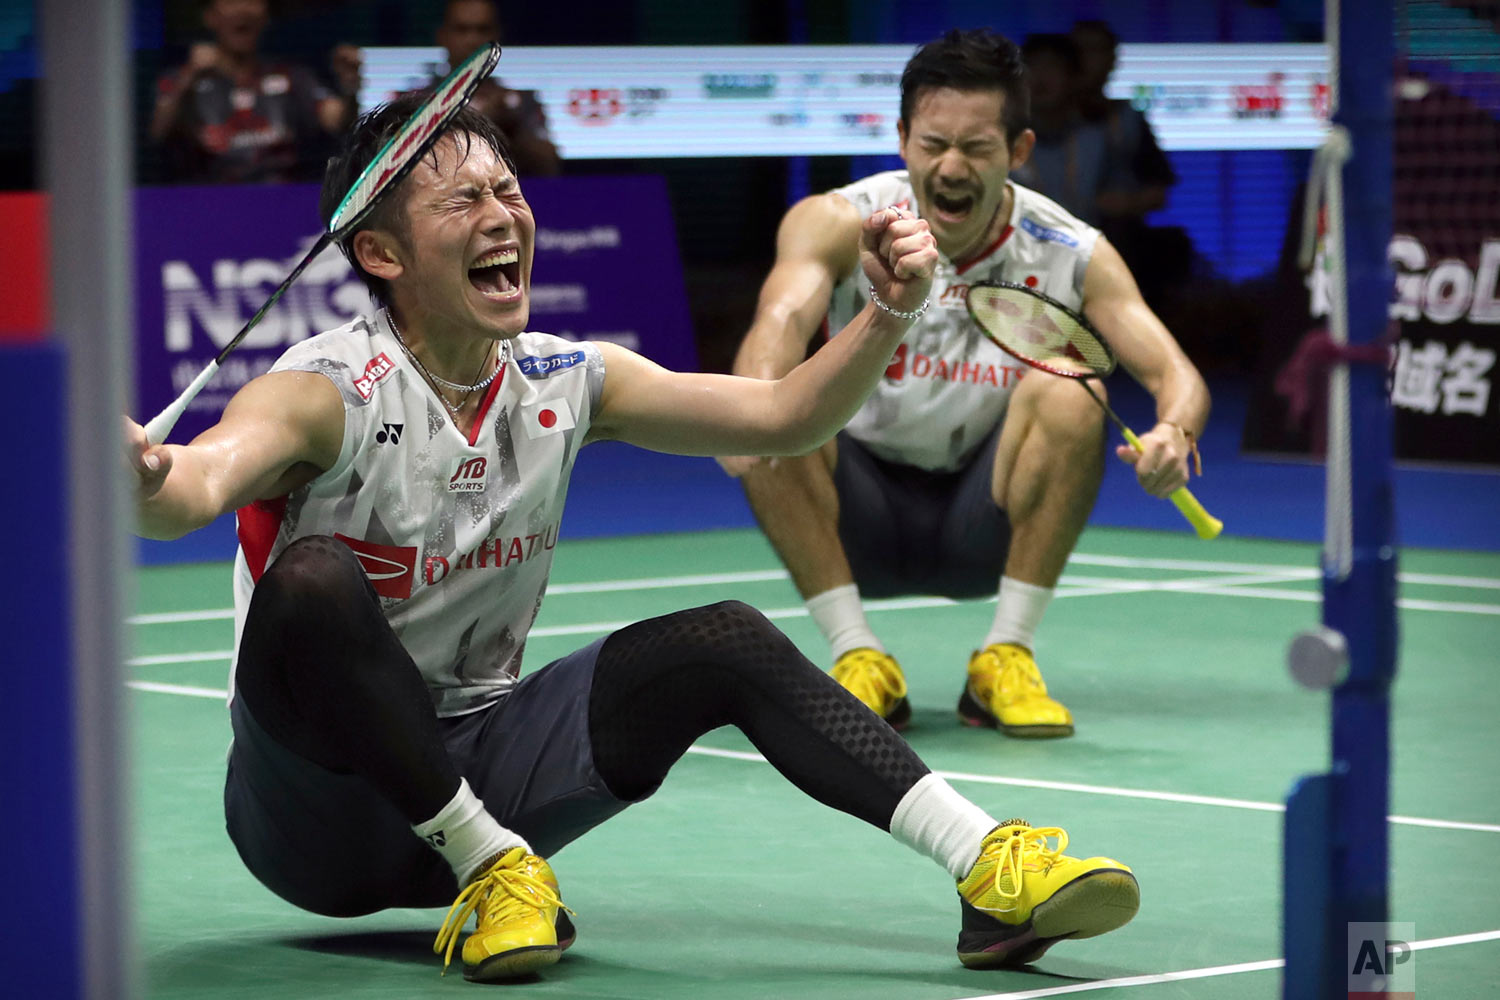 Takeshi Kamura, left, and Keigo Sonoda of Japan react after beating Marcus Fernaldi Gideon and Kevin Sanjaya Sukamuljo of Indonesia in their men's badminton doubles quarterfinal match at the BWF World Championships in Nanjing, China, Friday, Aug. 3, 2018. (AP Photo/Mark Schiefelbein)